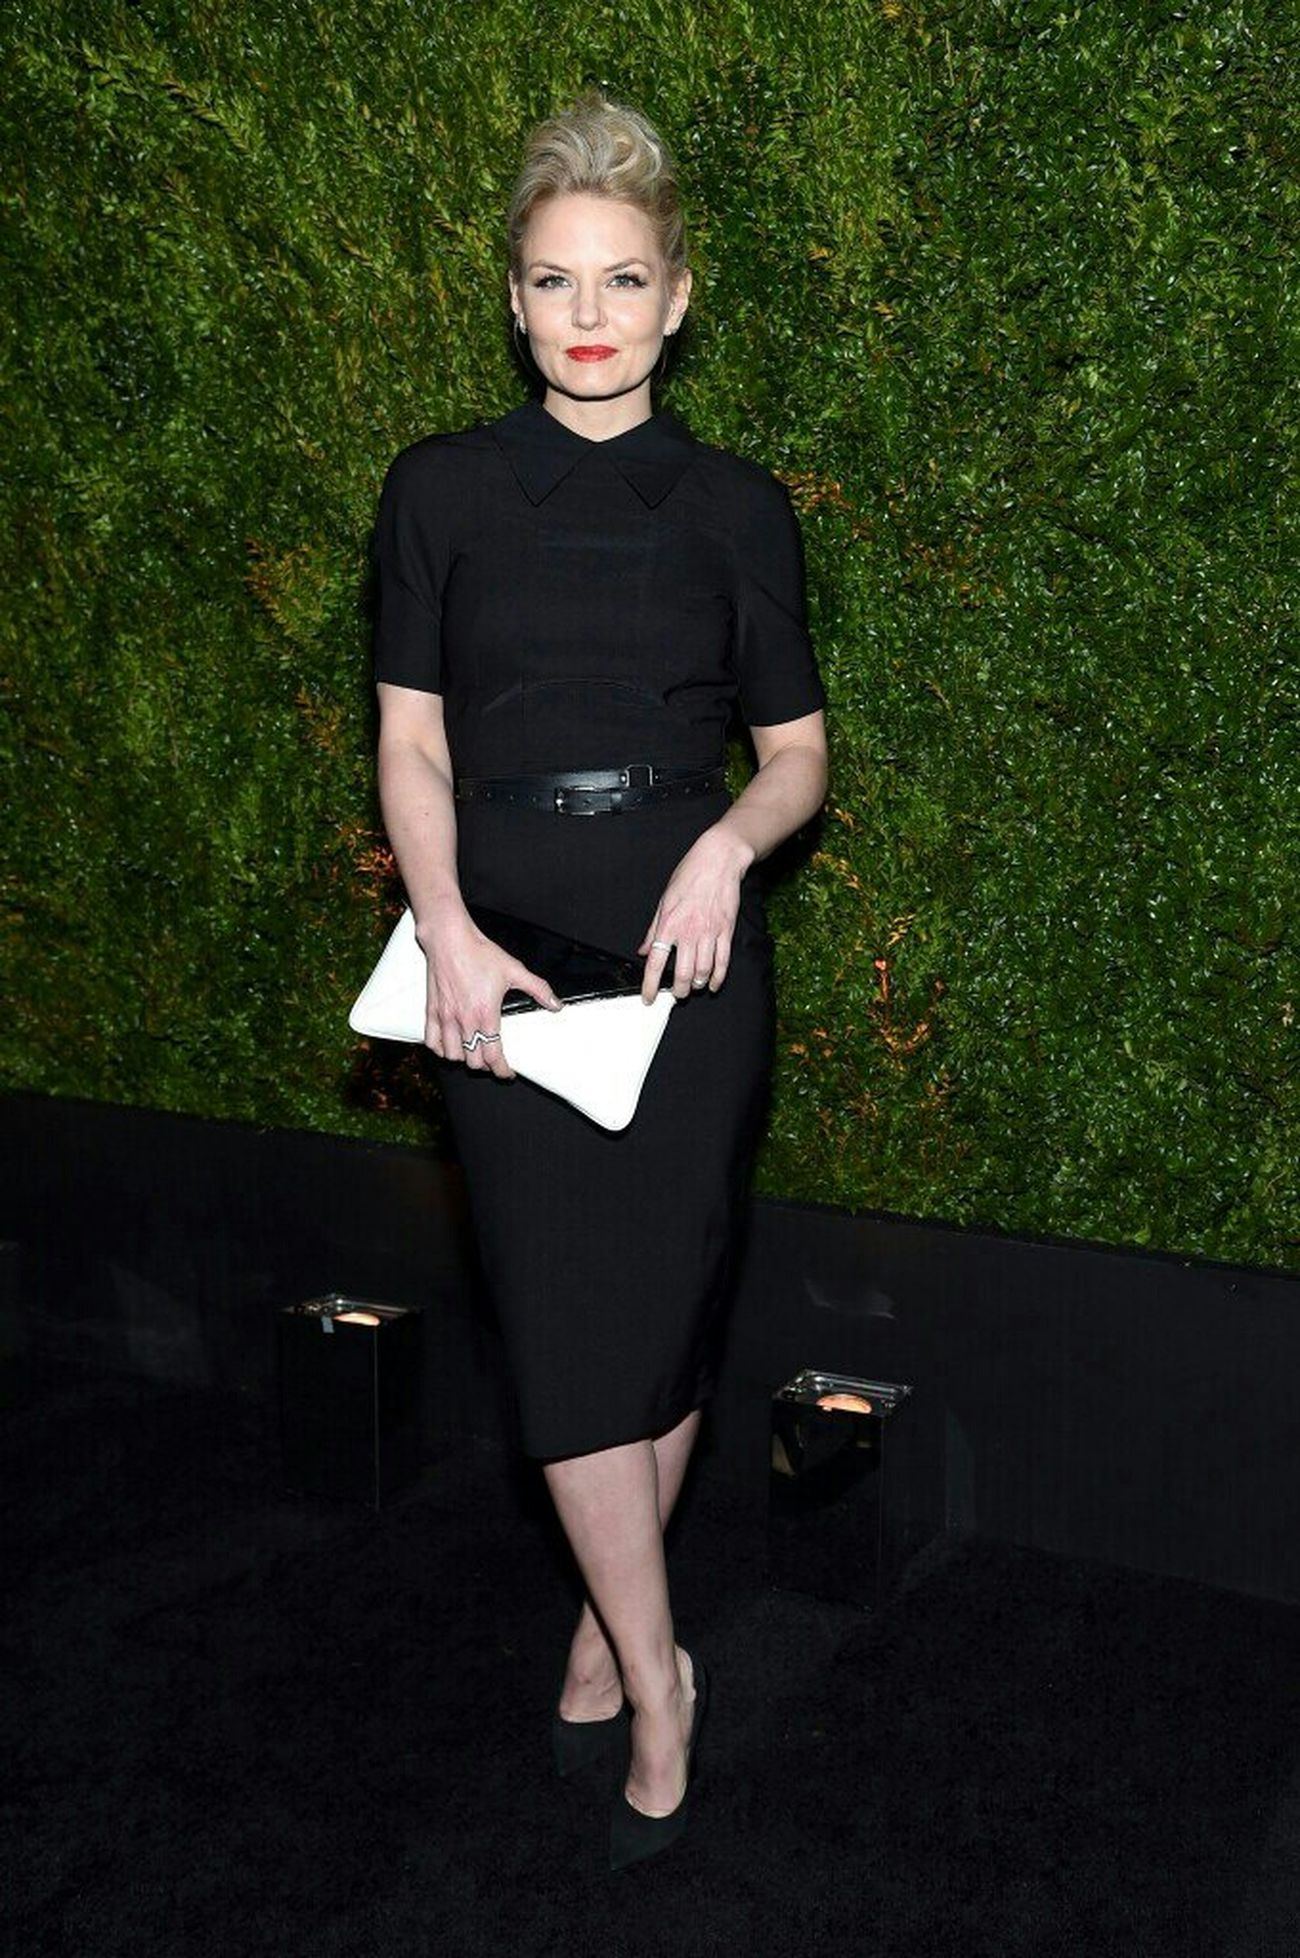 The Chanel Dinner At The Tribeca Film Festival